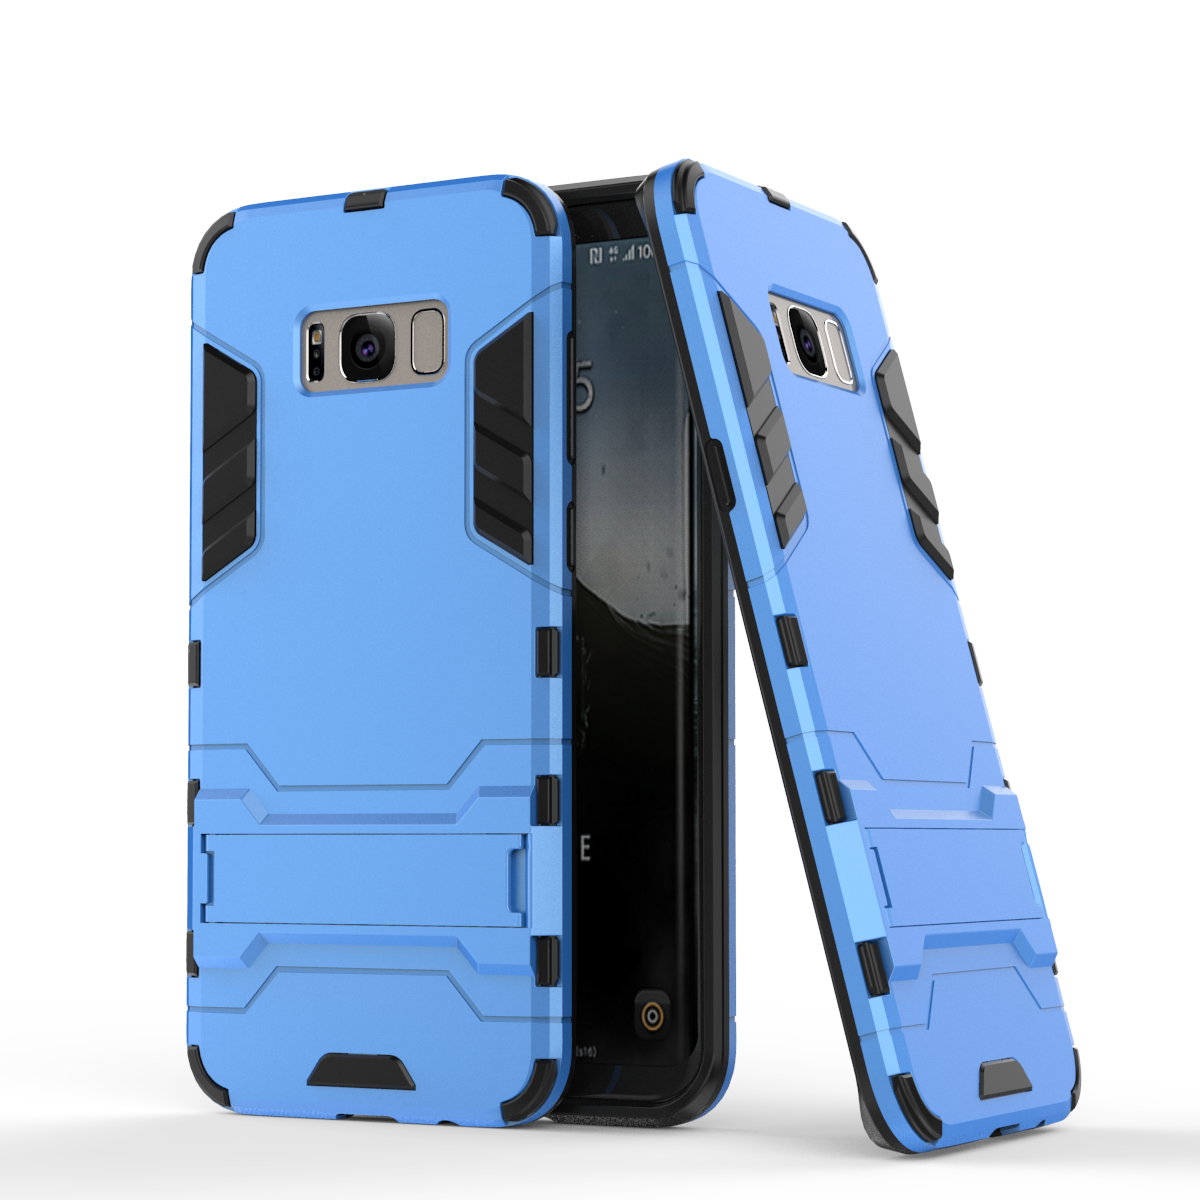 Rmor defender protective case cover with kickstand for samsung galaxy s8 blue p20170327161909511